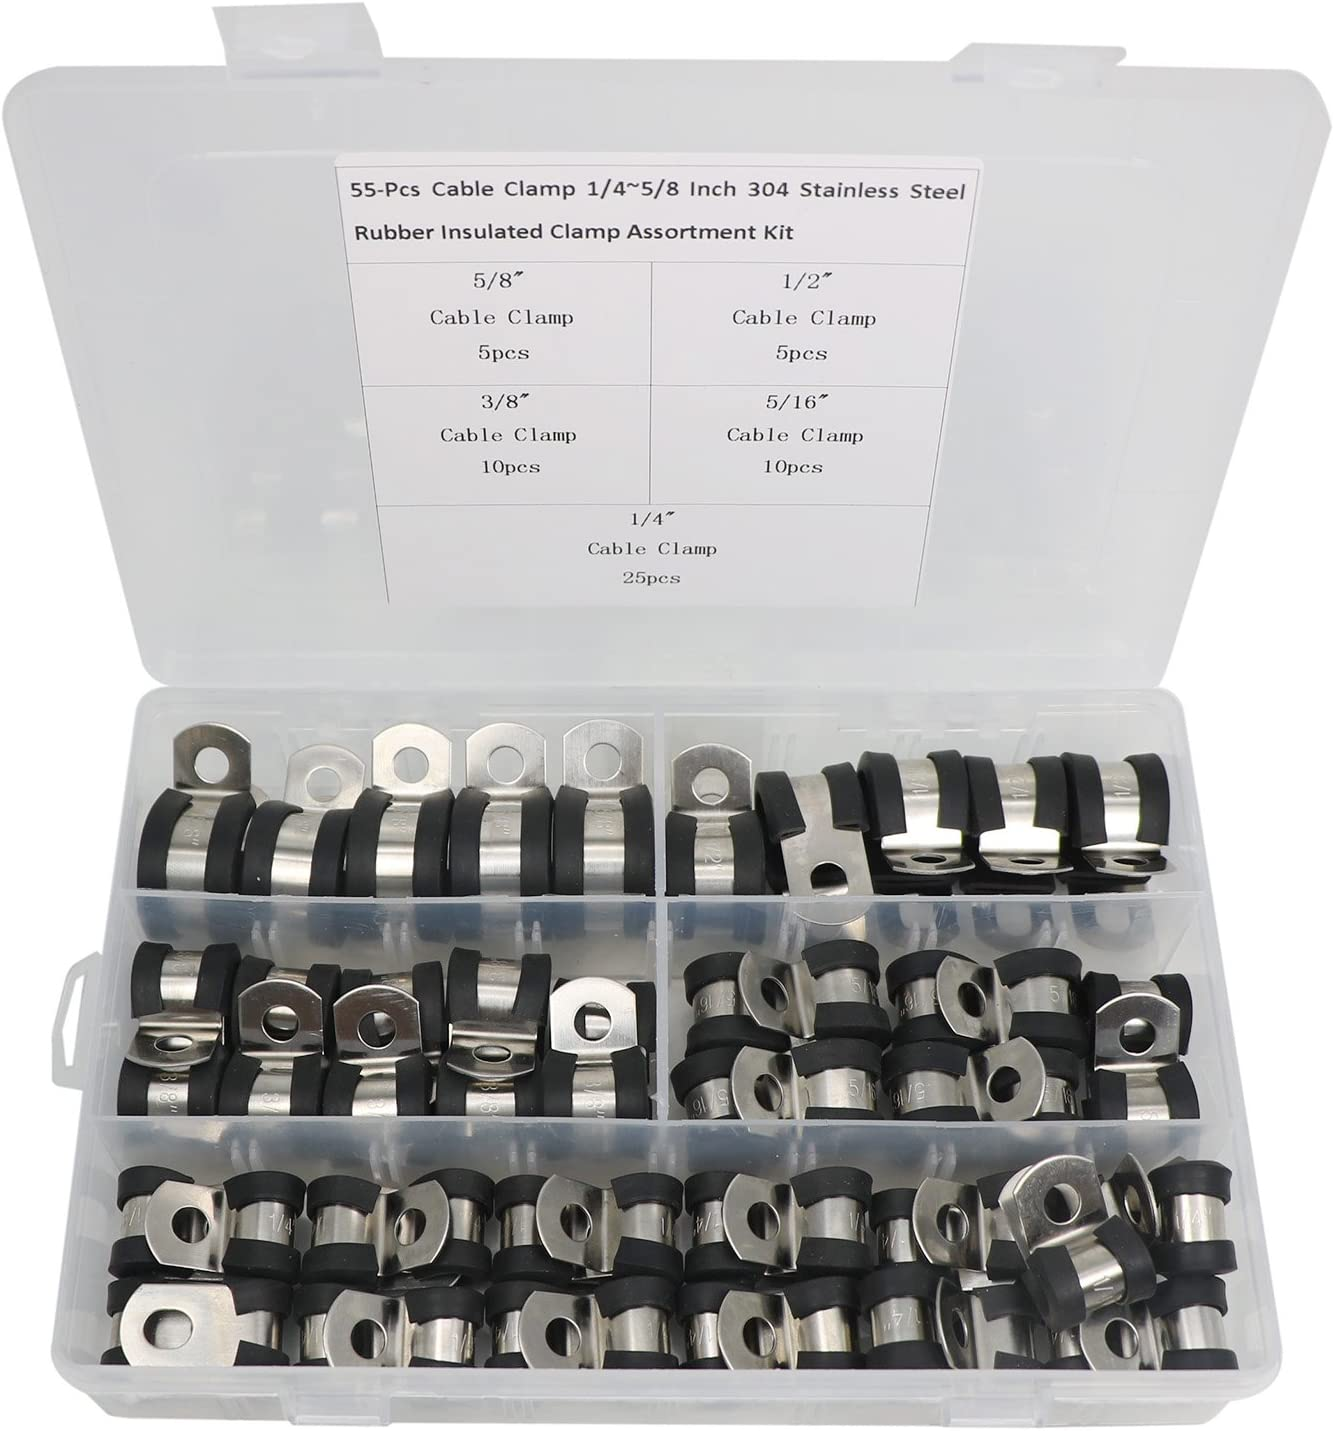 Cable Clamp Assortment Kit Tube Holder for Tube 80 PCS 304 Stainless Steel Vinyl Cable Coated Clamps in 5 Sizes 1//4 5//16 3//8 1//2 5//8 Metal Cable Clamps Pipe or Wire Cord Installation